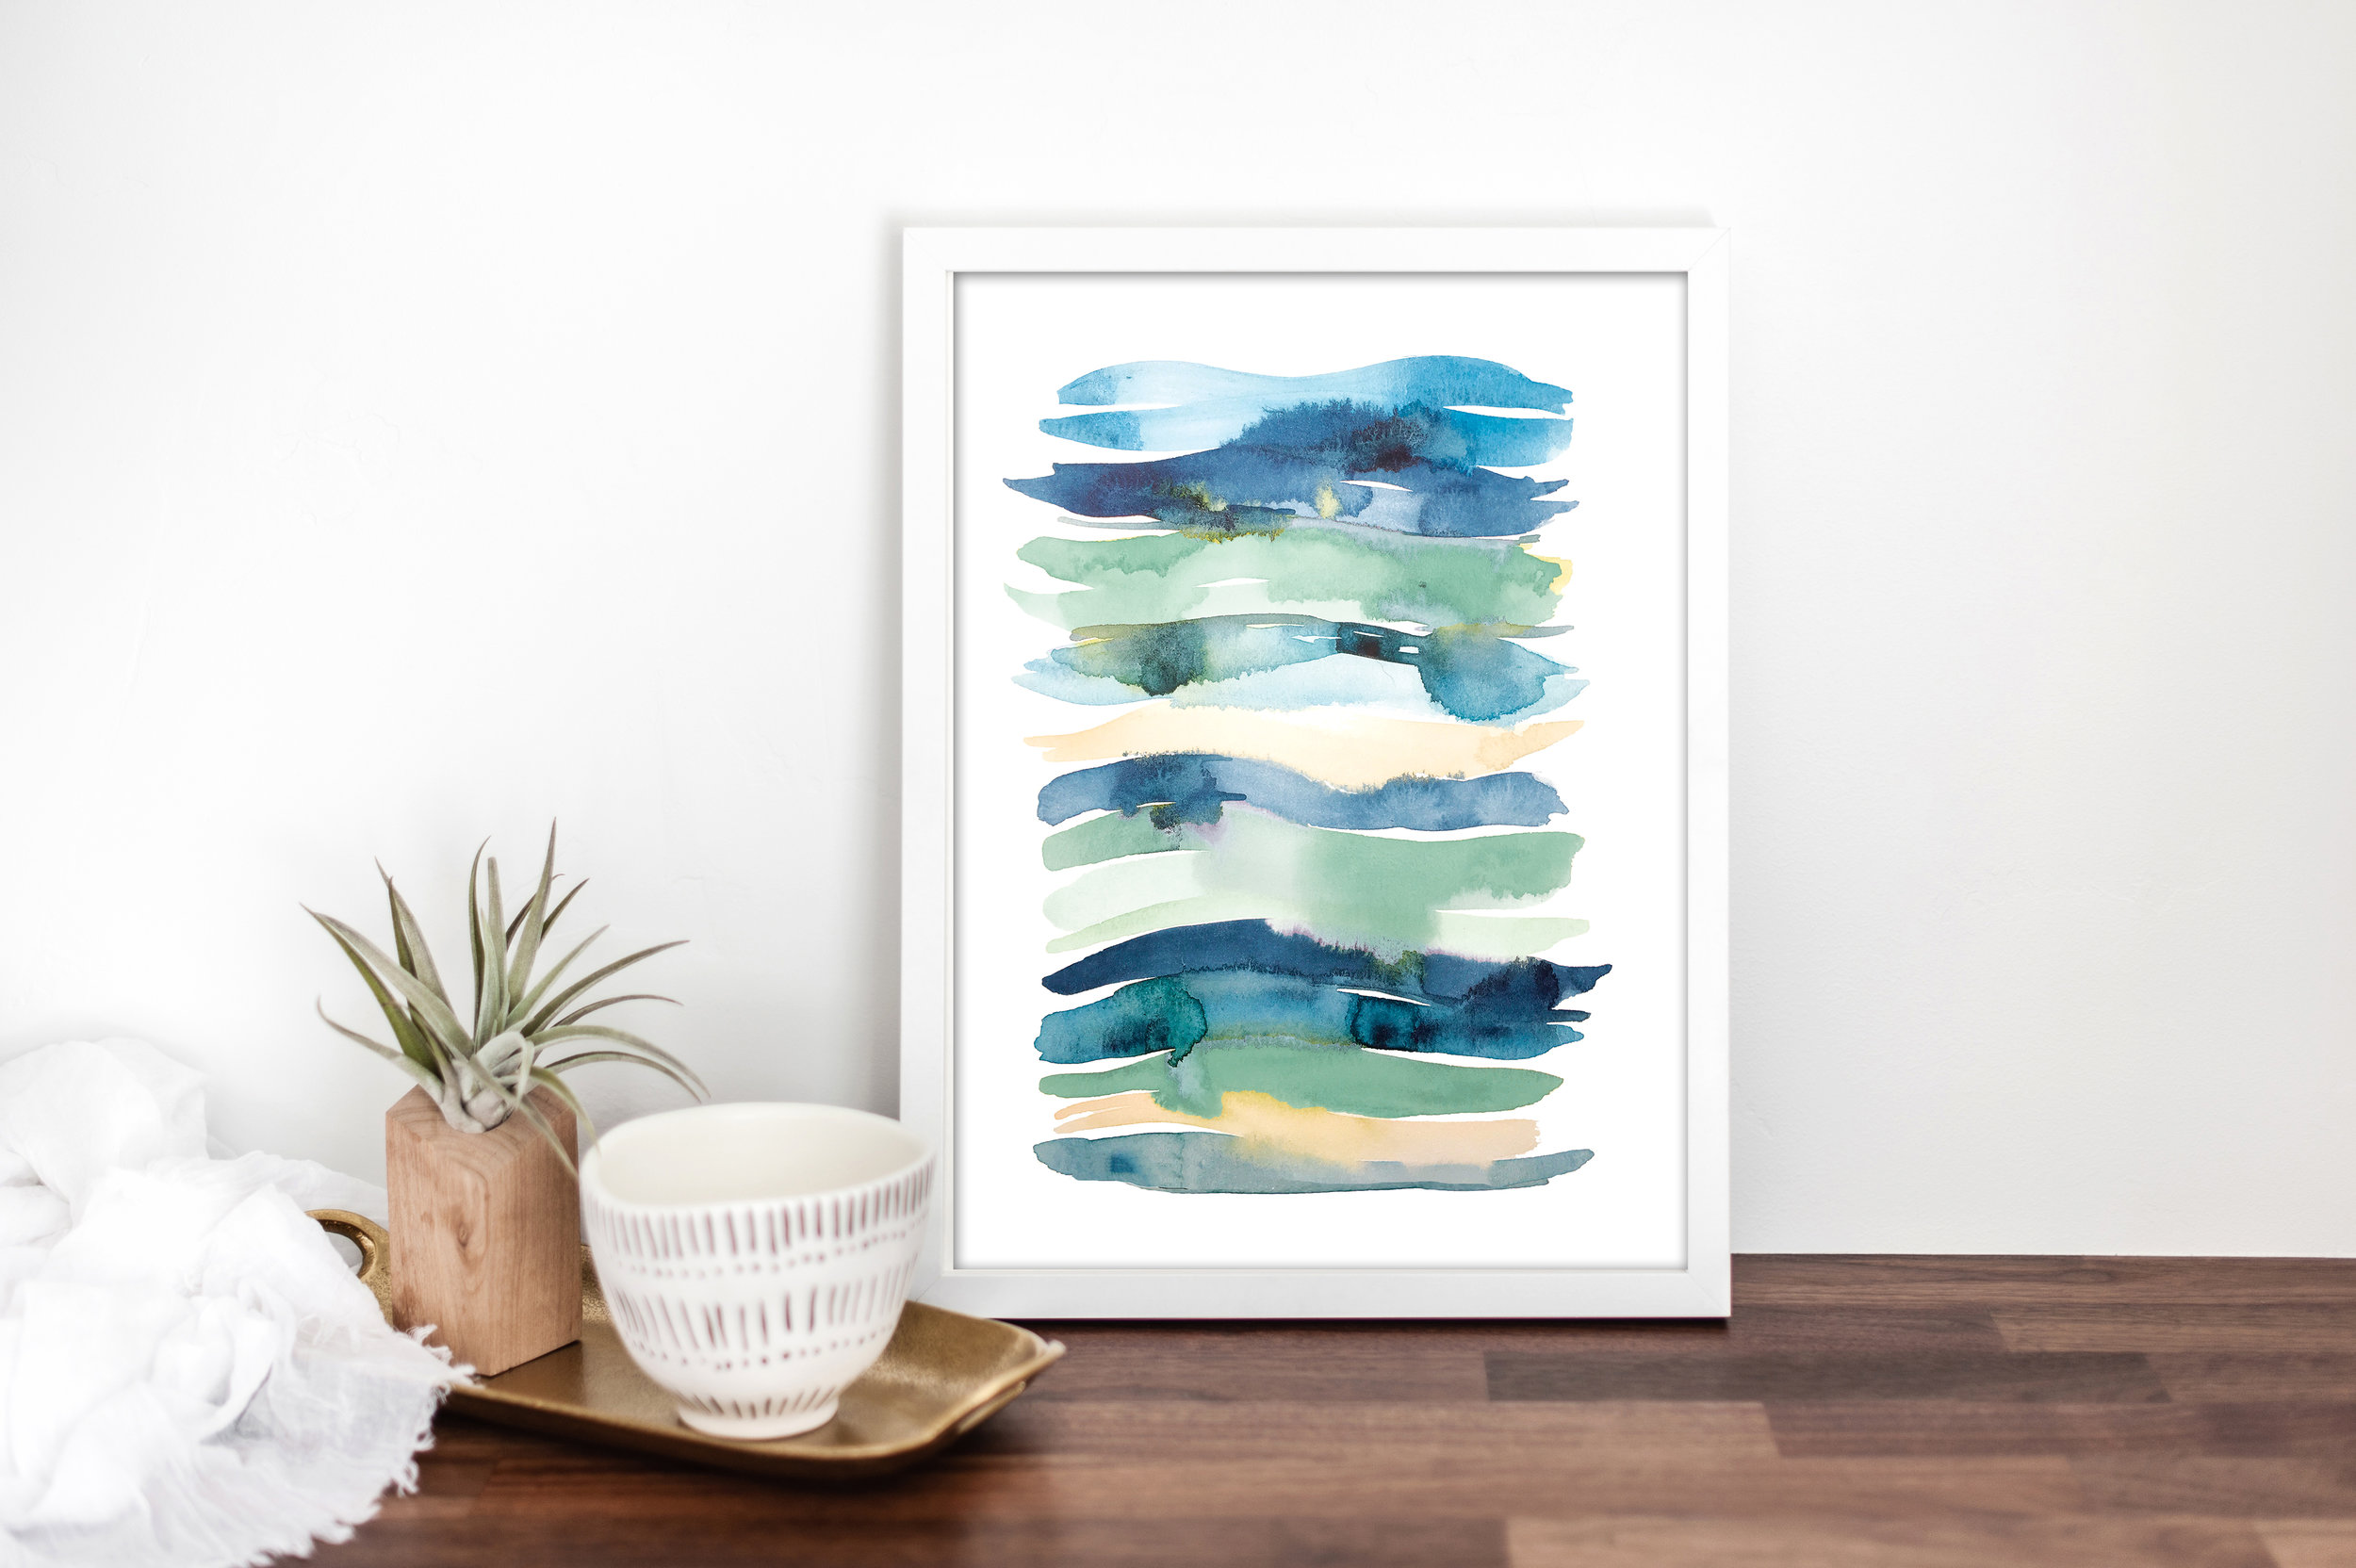 The Abstract Collection - Find the perfect statement piece for your space